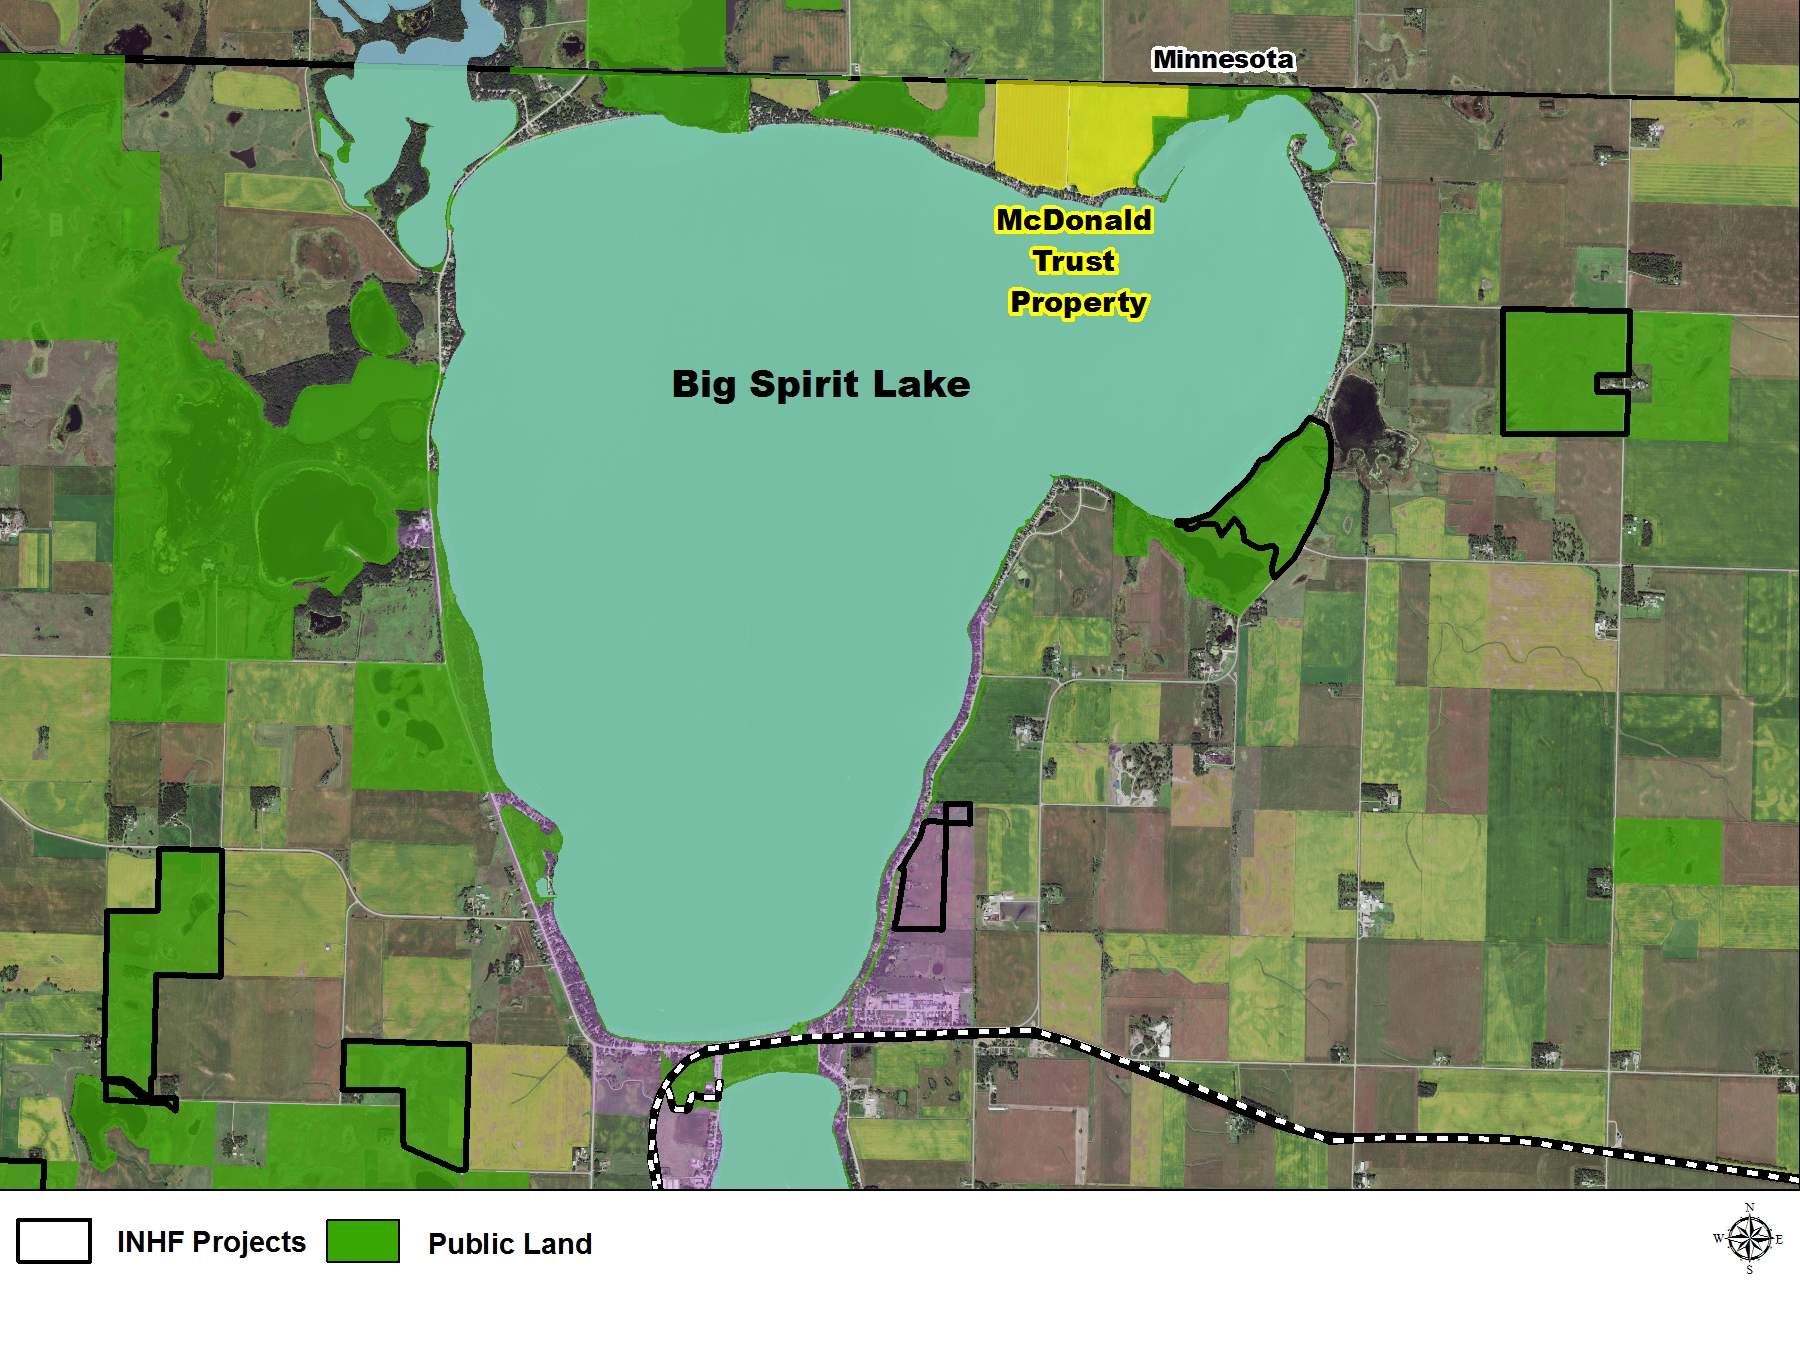 Important land in Iowa Great Lakes watershed protected by INHF